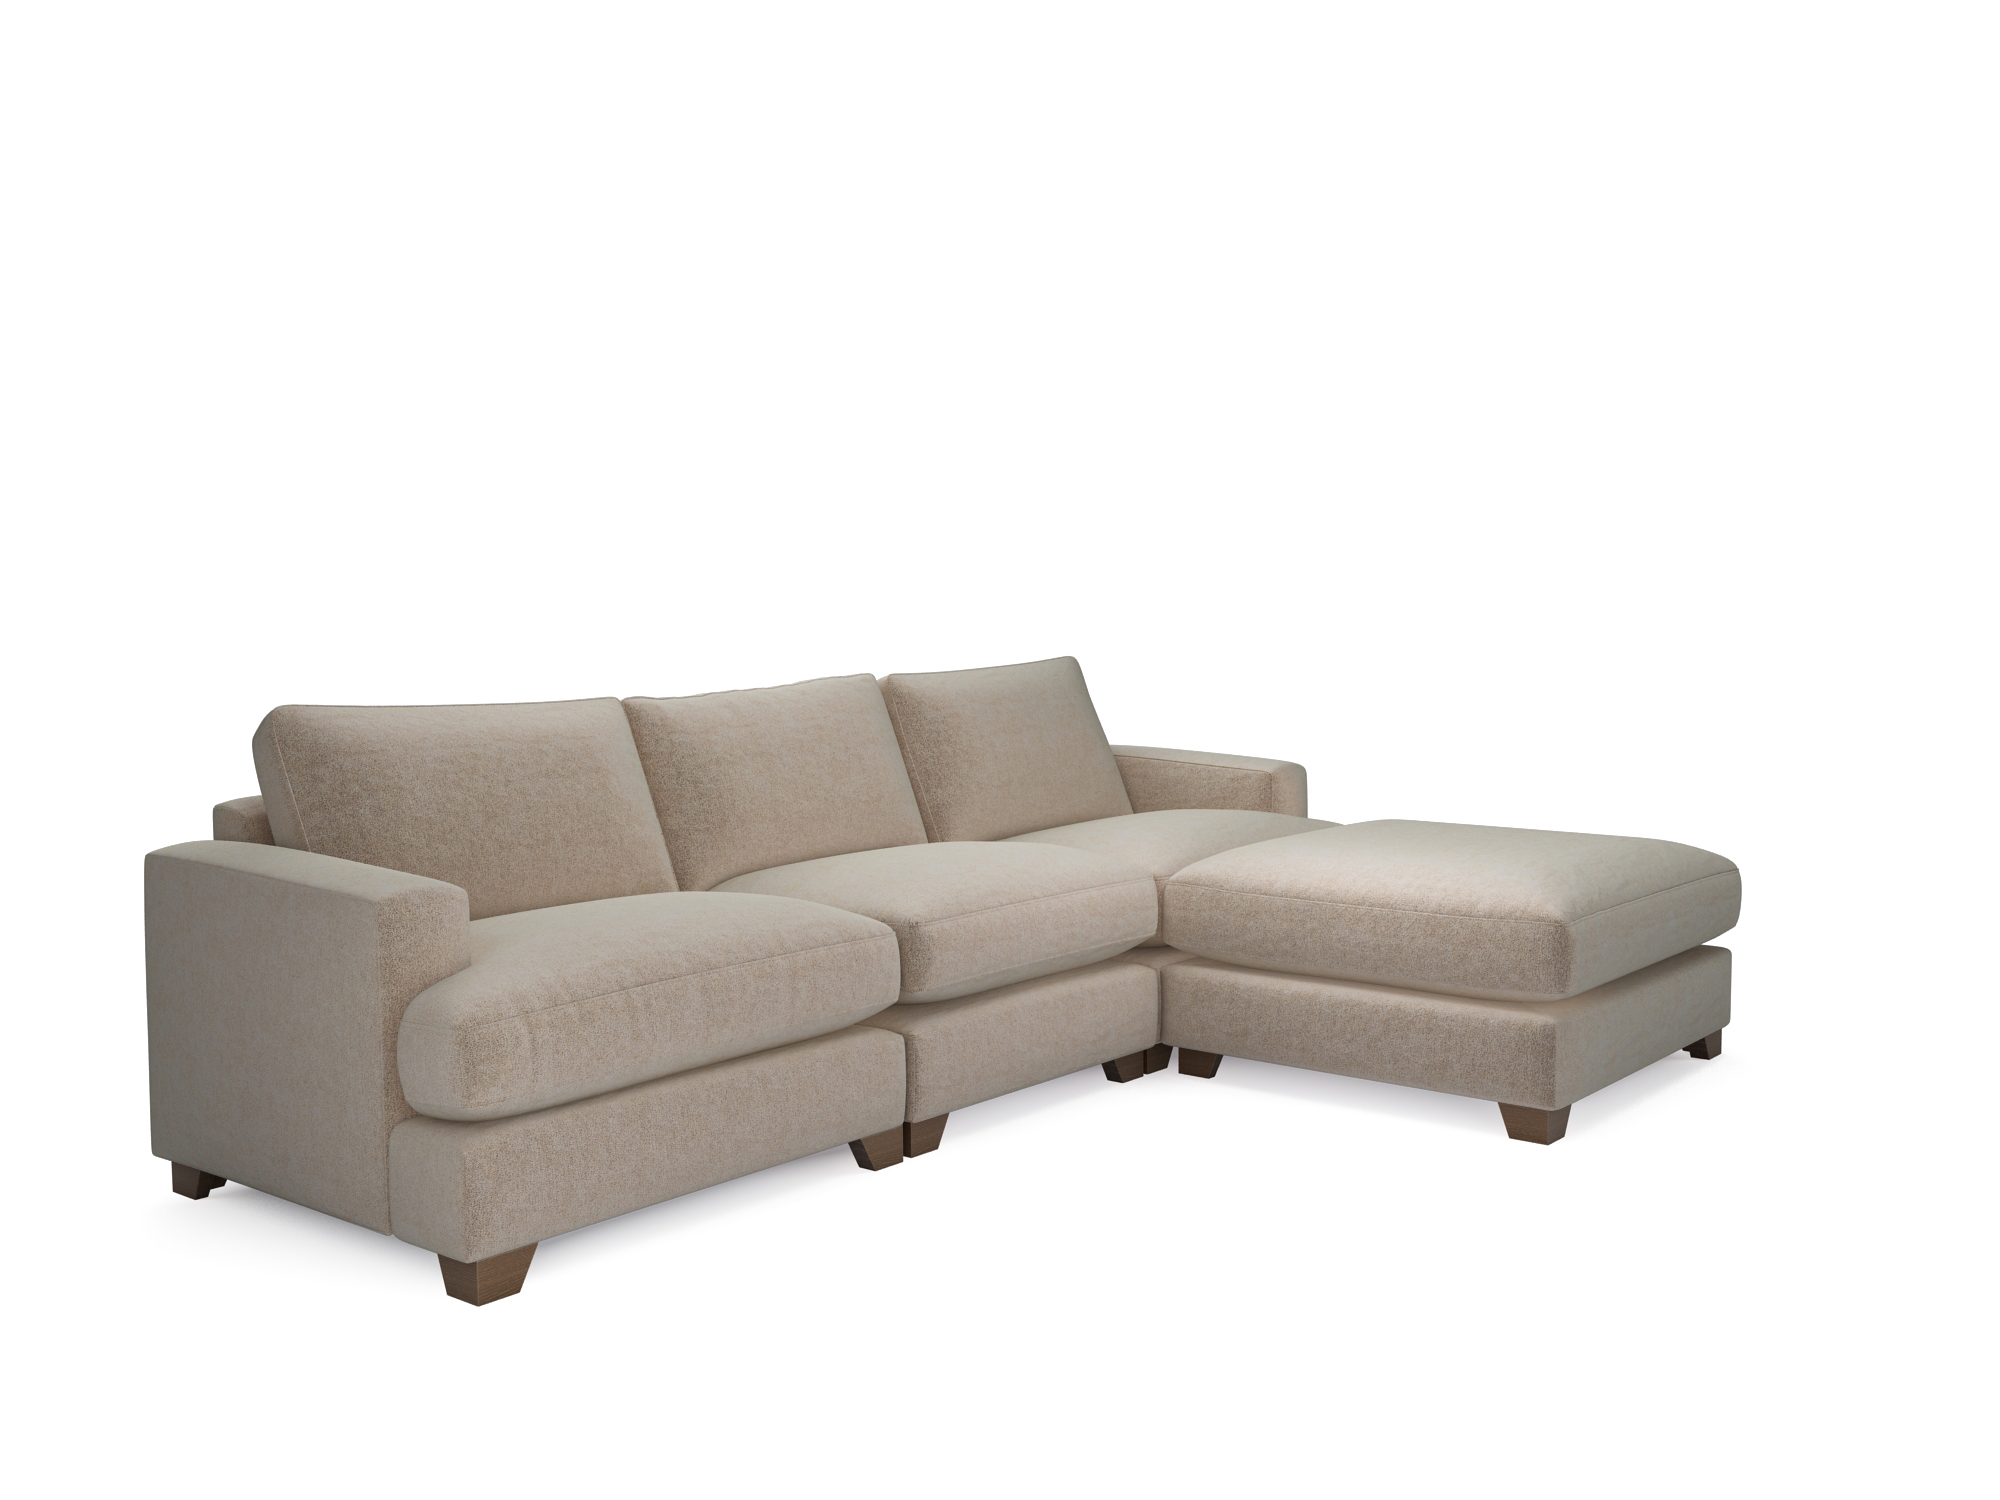 holly sofa the lounge co 2 seater grey with footstool sofas neutral